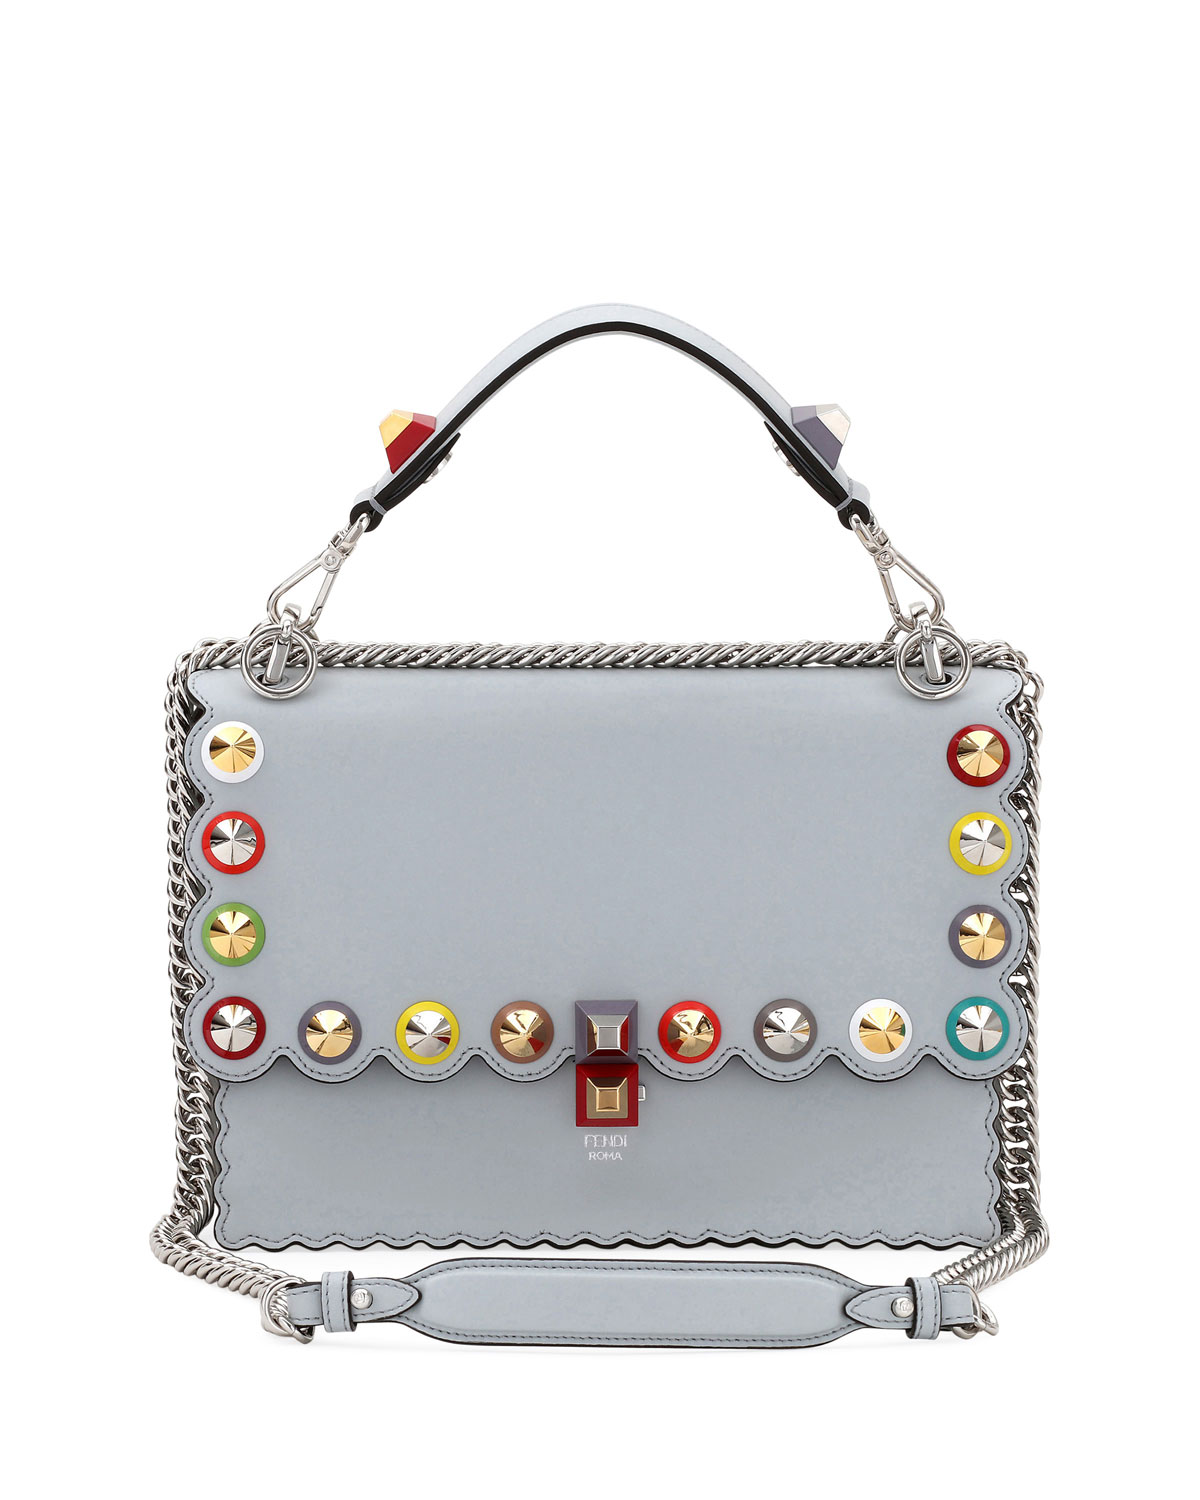 32a7f7ee243 Fendi Kan I Regular Studded Leather Scalloped Shoulder Bag | Neiman ...